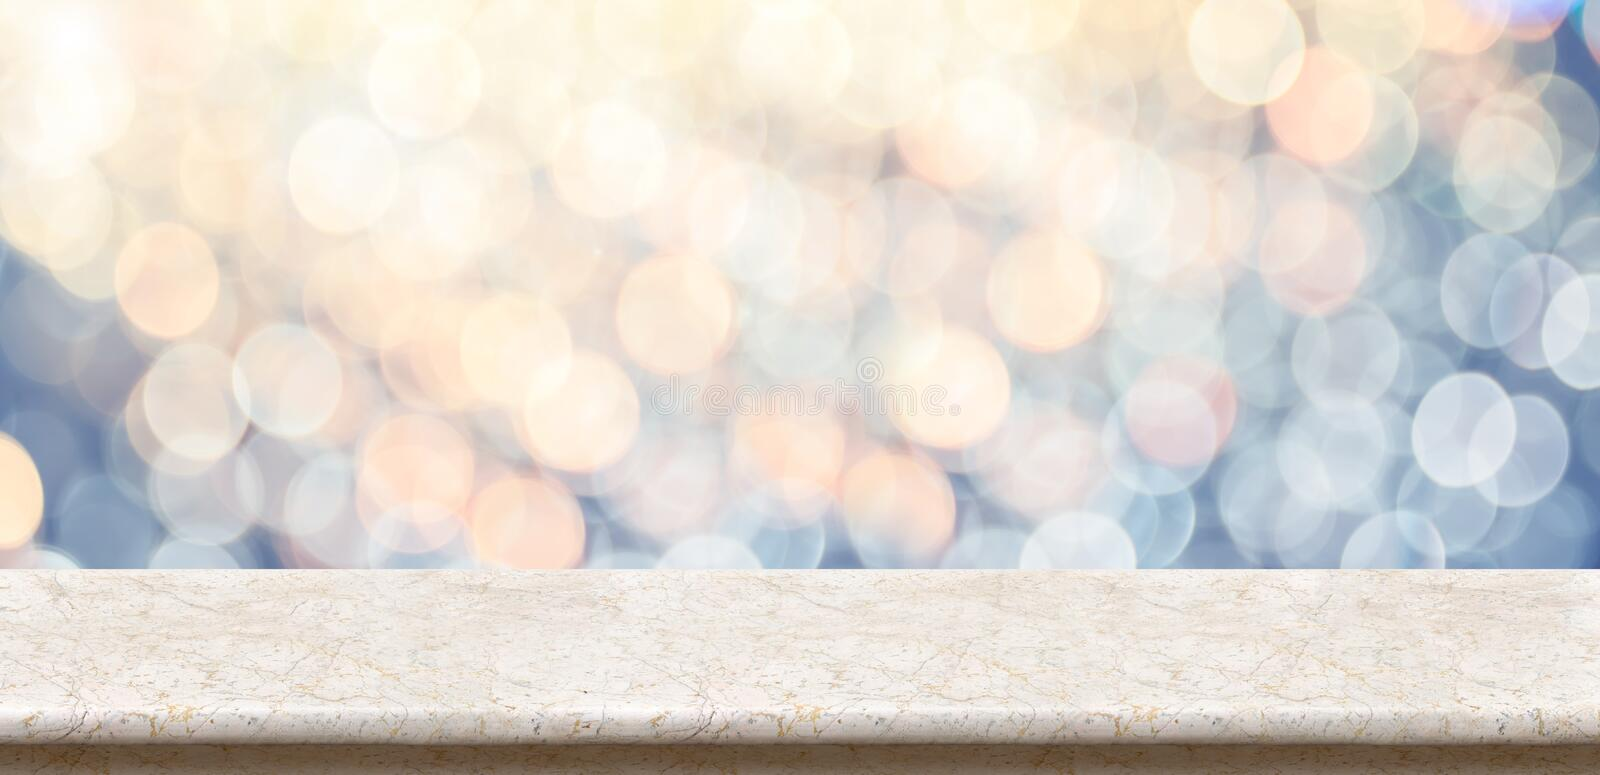 Empty marble glossy table top with blur sparkling soft pastel bl. Ue and orange bokeh abstract background,panoramic banner for display or montage of product royalty free stock photo